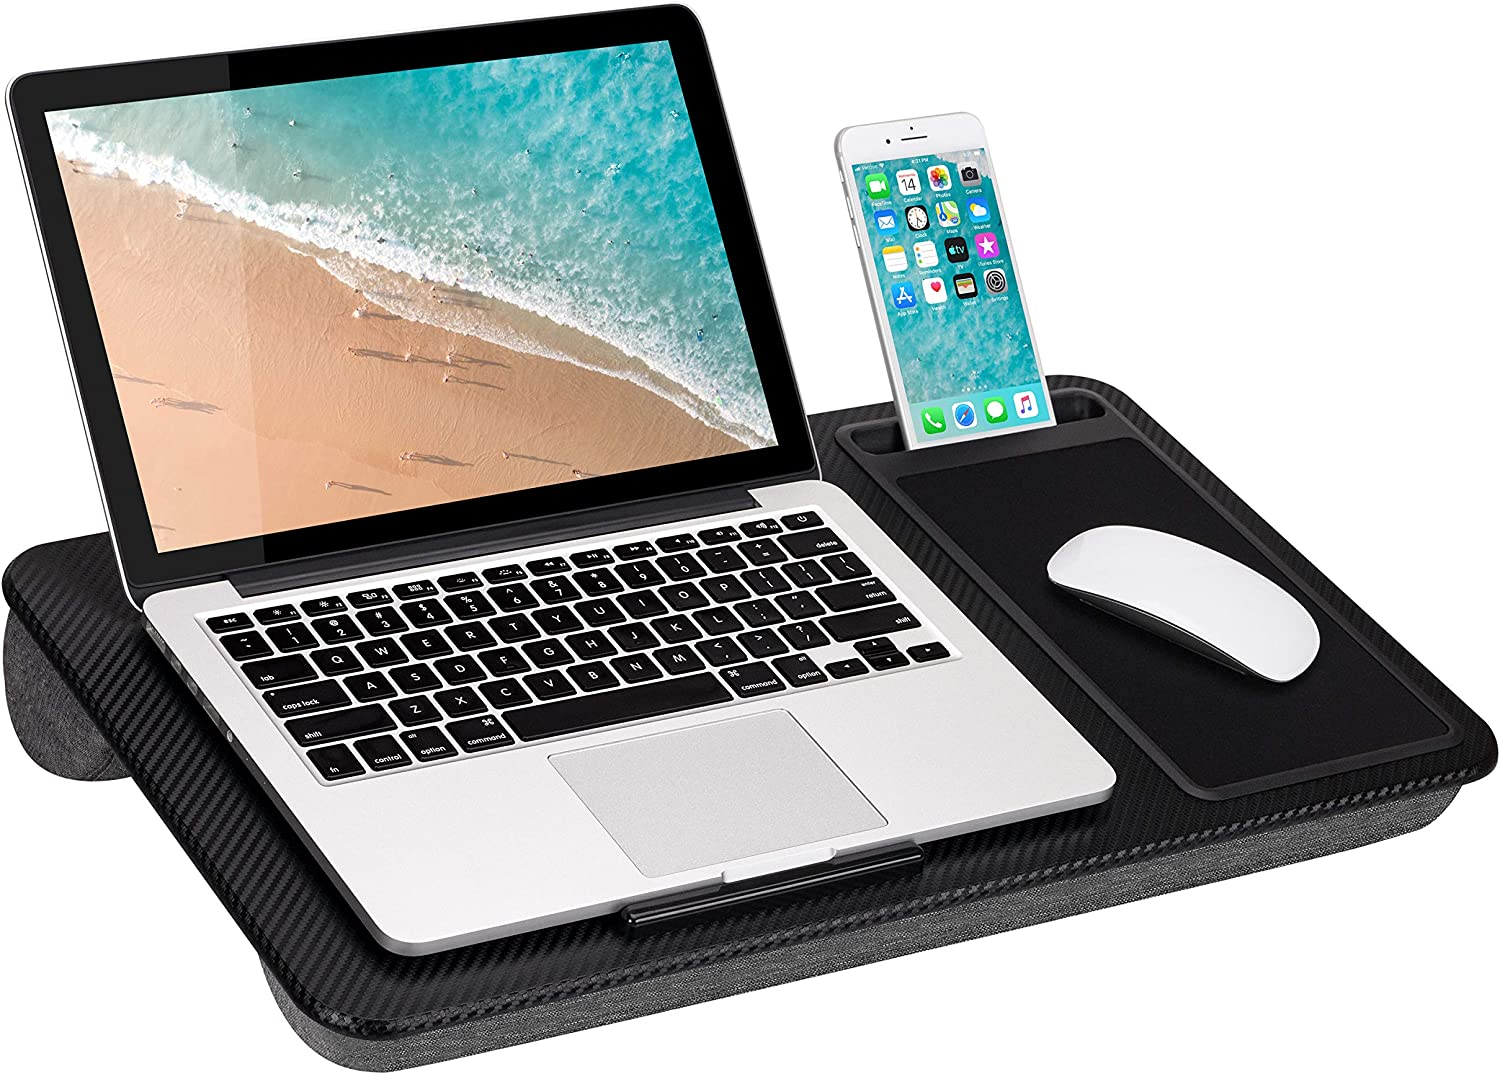 LapGear Home Office Lap Desk with Device Ledge, Mouse Pad, and Phone Holder - Black Carbon - Fits Up to 15.6 Inch Laptops - Style No. 91588